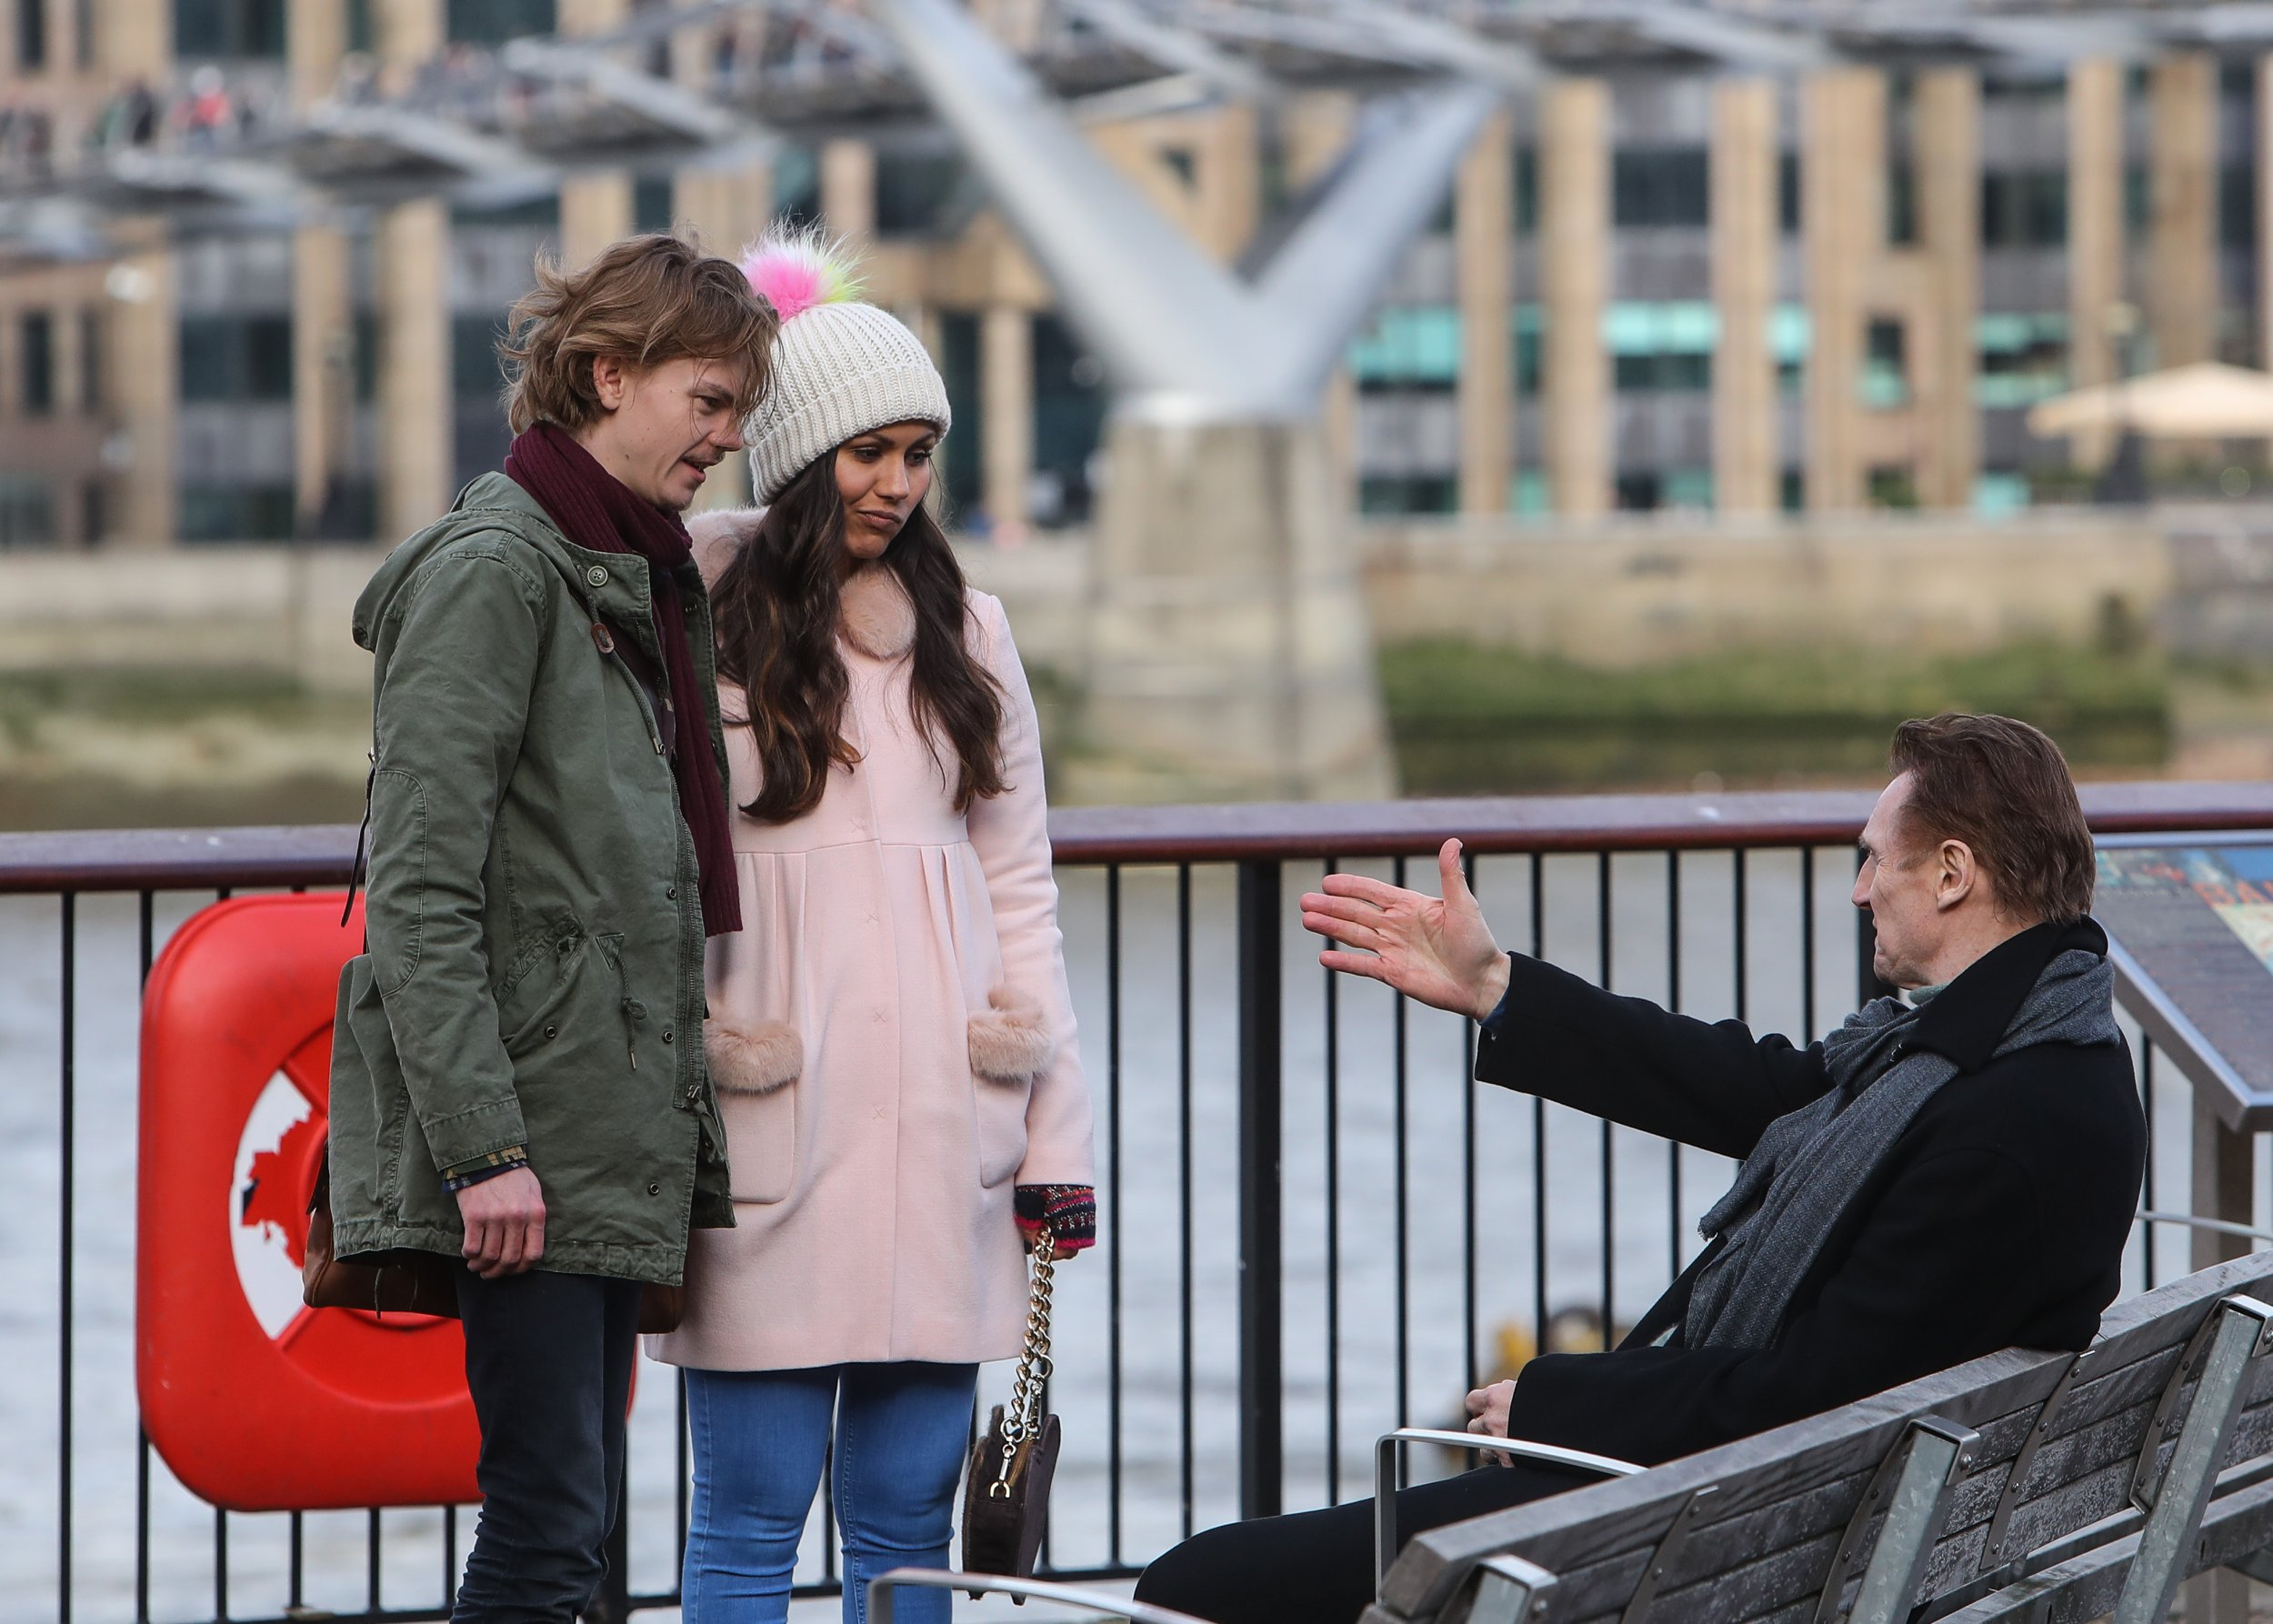 Do these photos prove that young romantic Sam is still with Joanna in the Love Actually sequel?